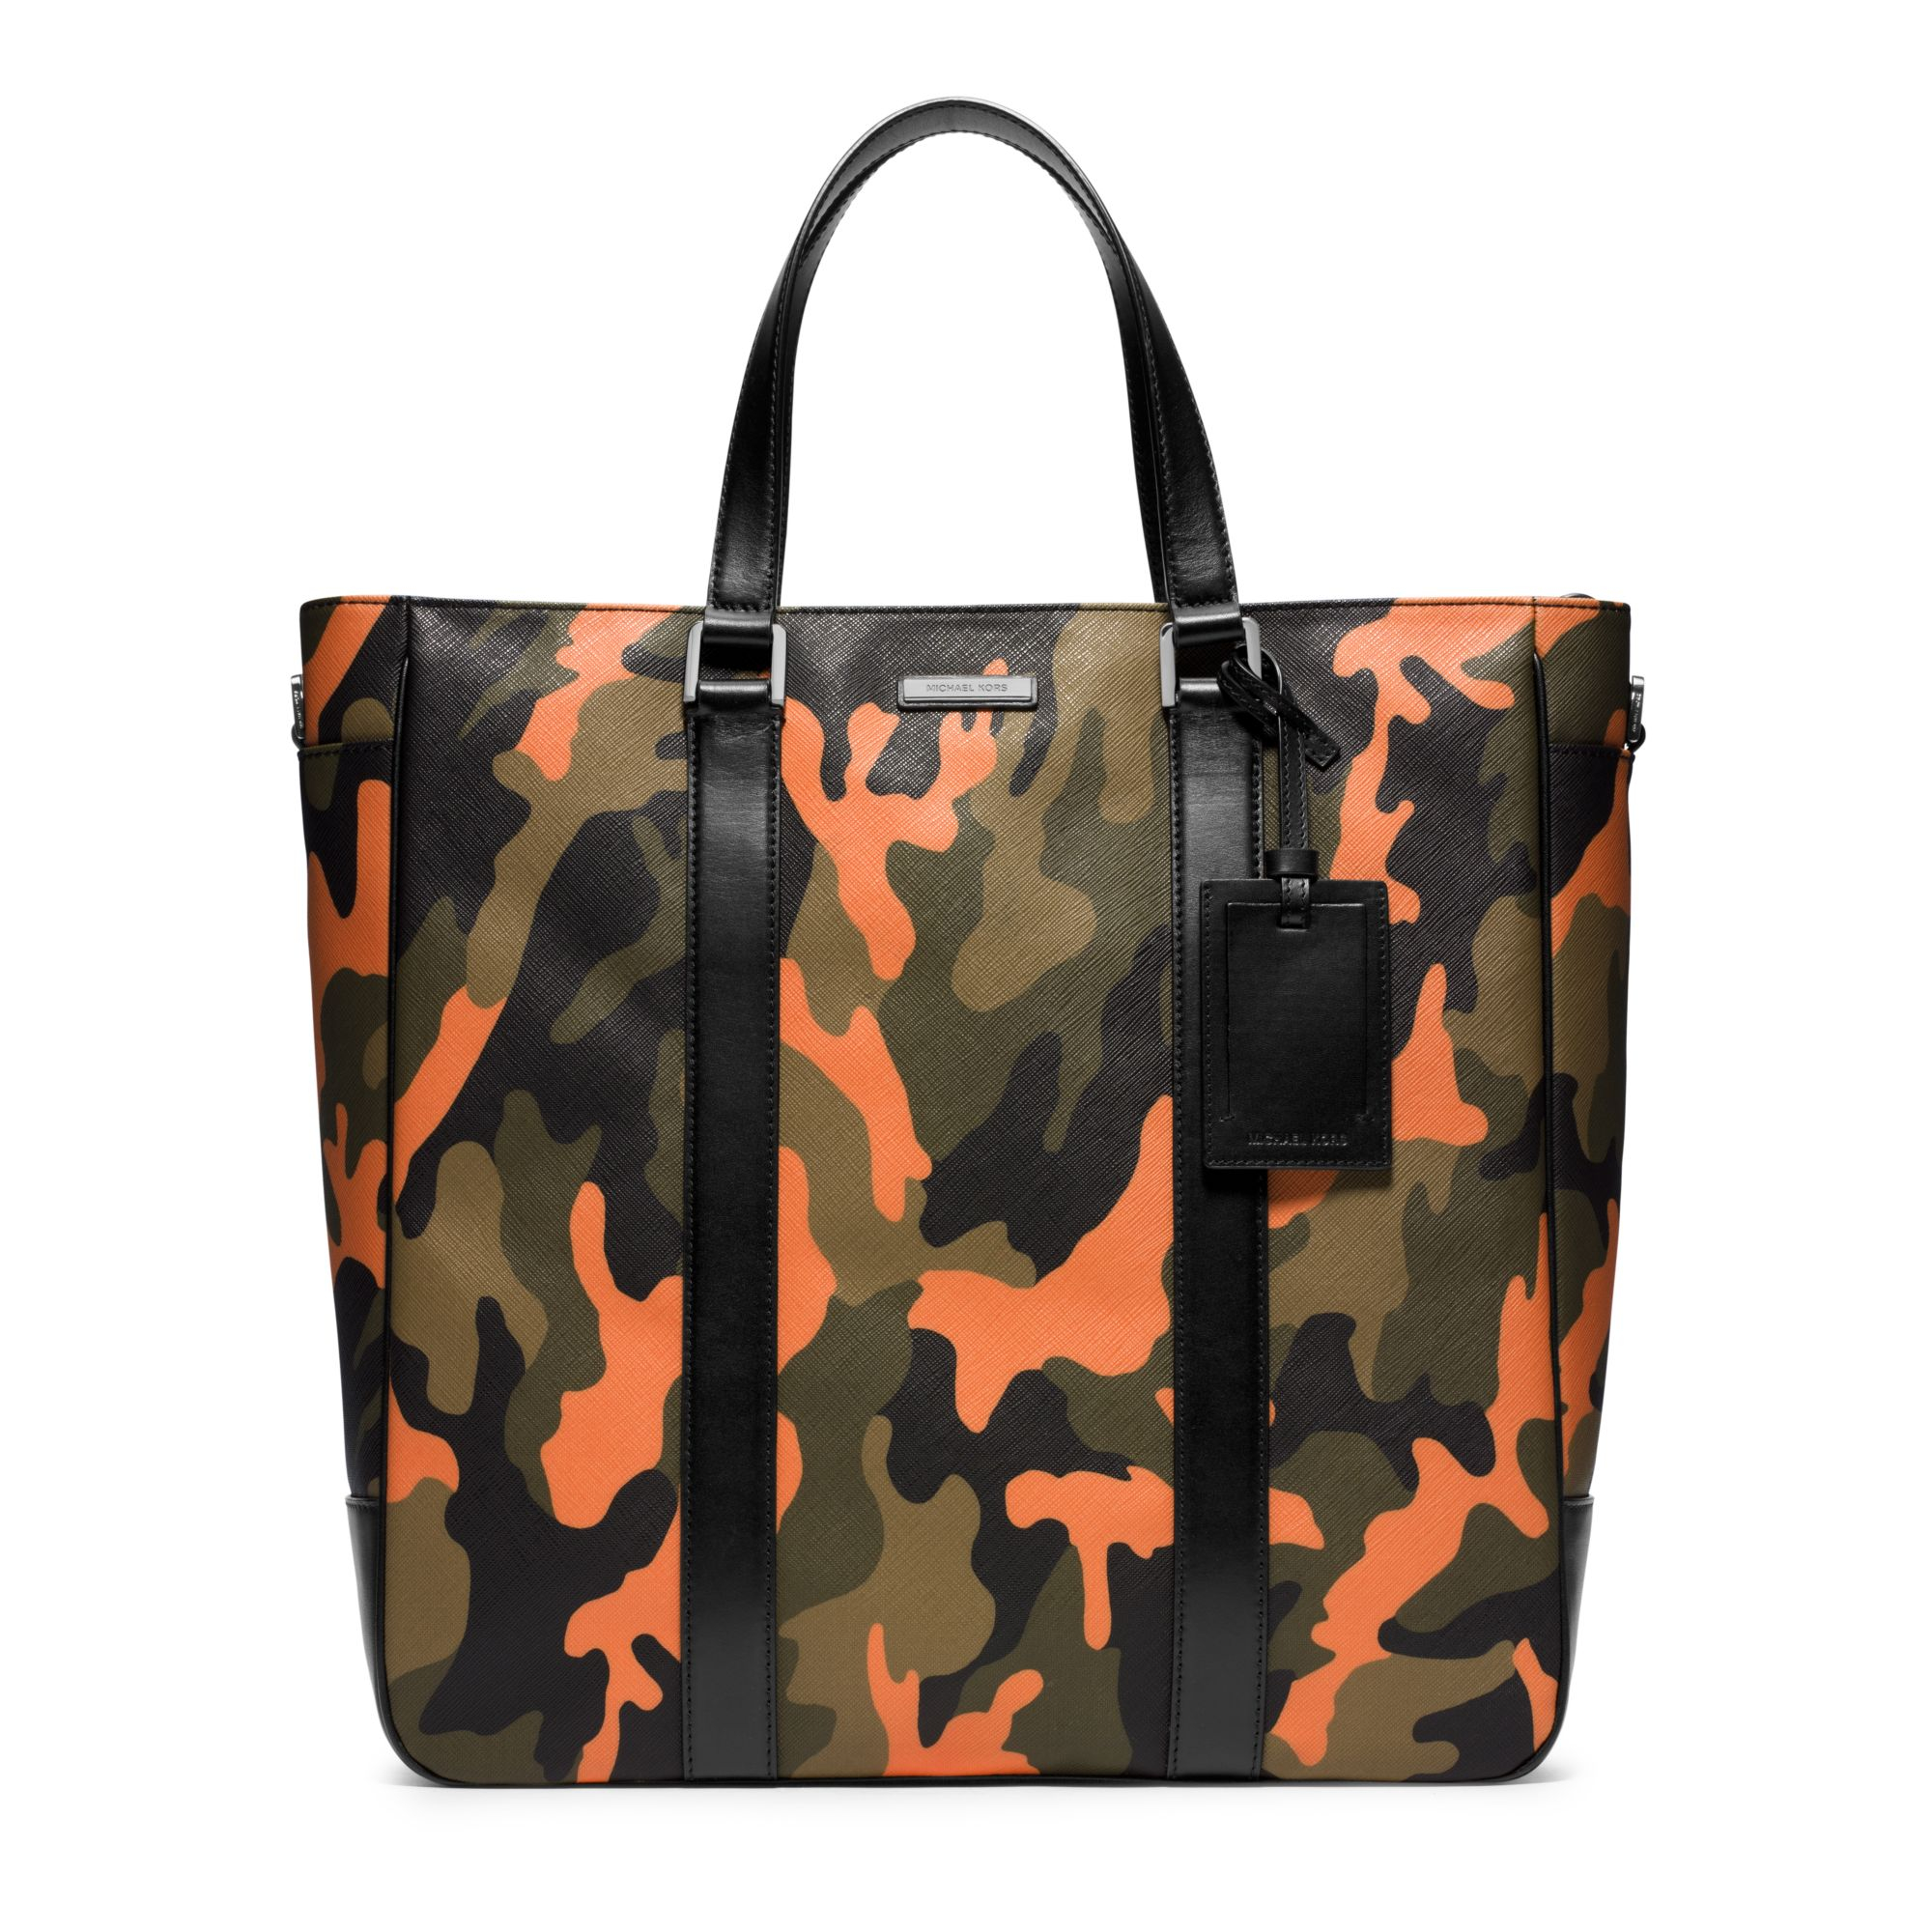 7edc263e419d ... australia lyst michael kors jet set mens camouflage large tote in green  for men 2e5f8 1f4db ...